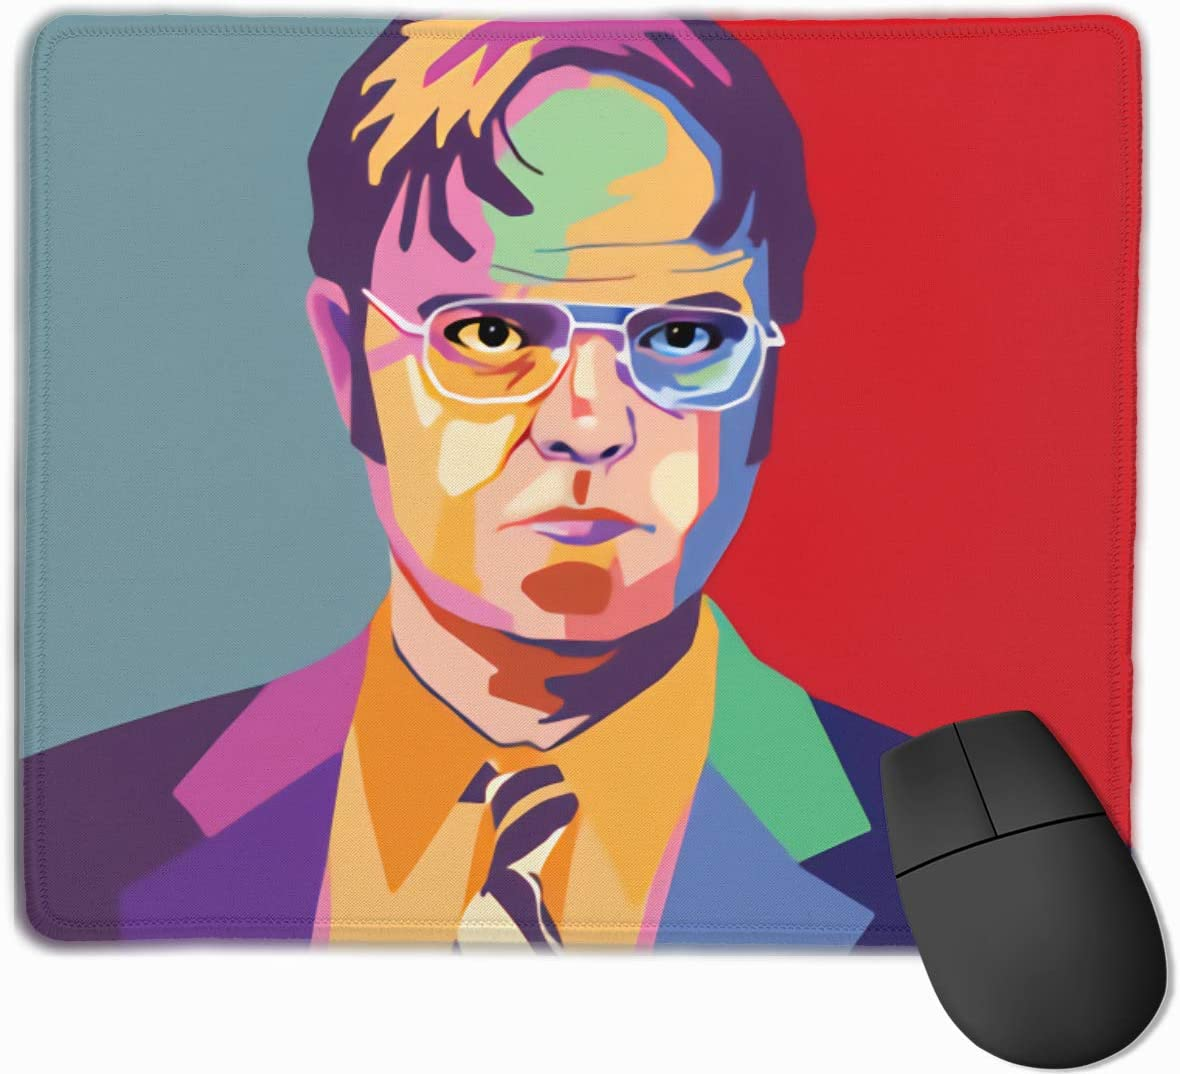 Dwight Schrute Office Desk Accessories Mouse Pad Office Decor Office Gifts Desk Decor